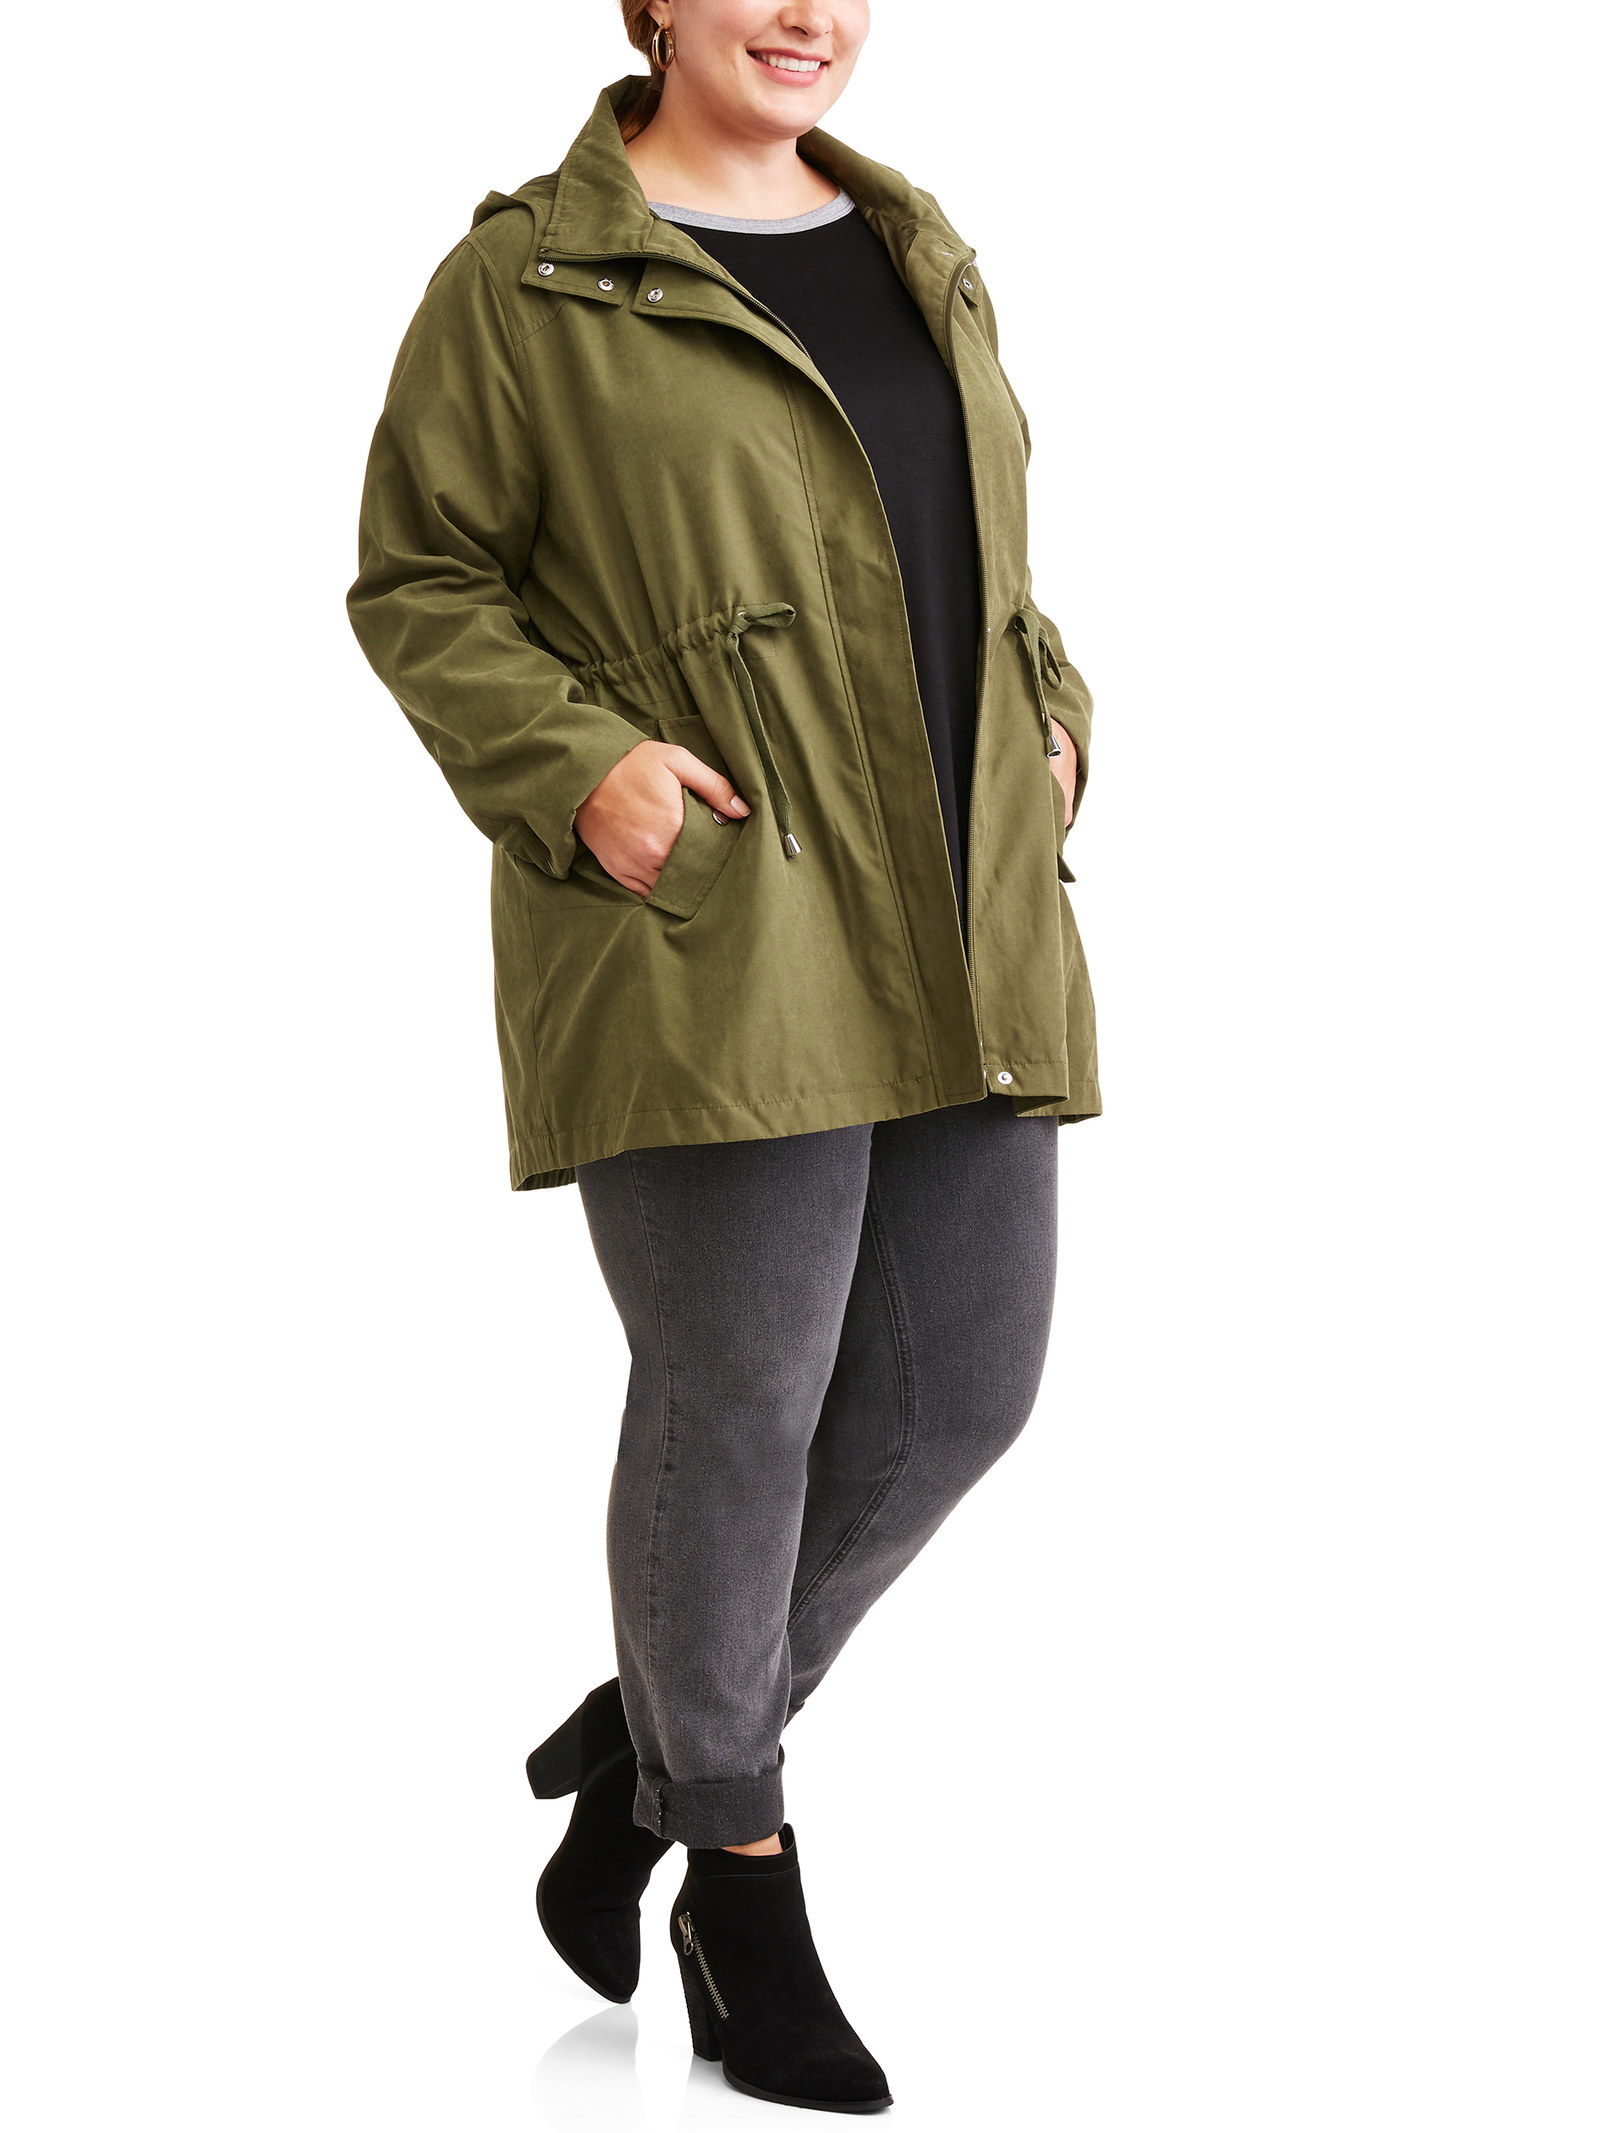 From puffers to parkas motos denim jackets \u2014 here\u0027s what you need get ready for winter. 19 Coats And Jackets You Can Get At Walmart That You\u0027ll Actually